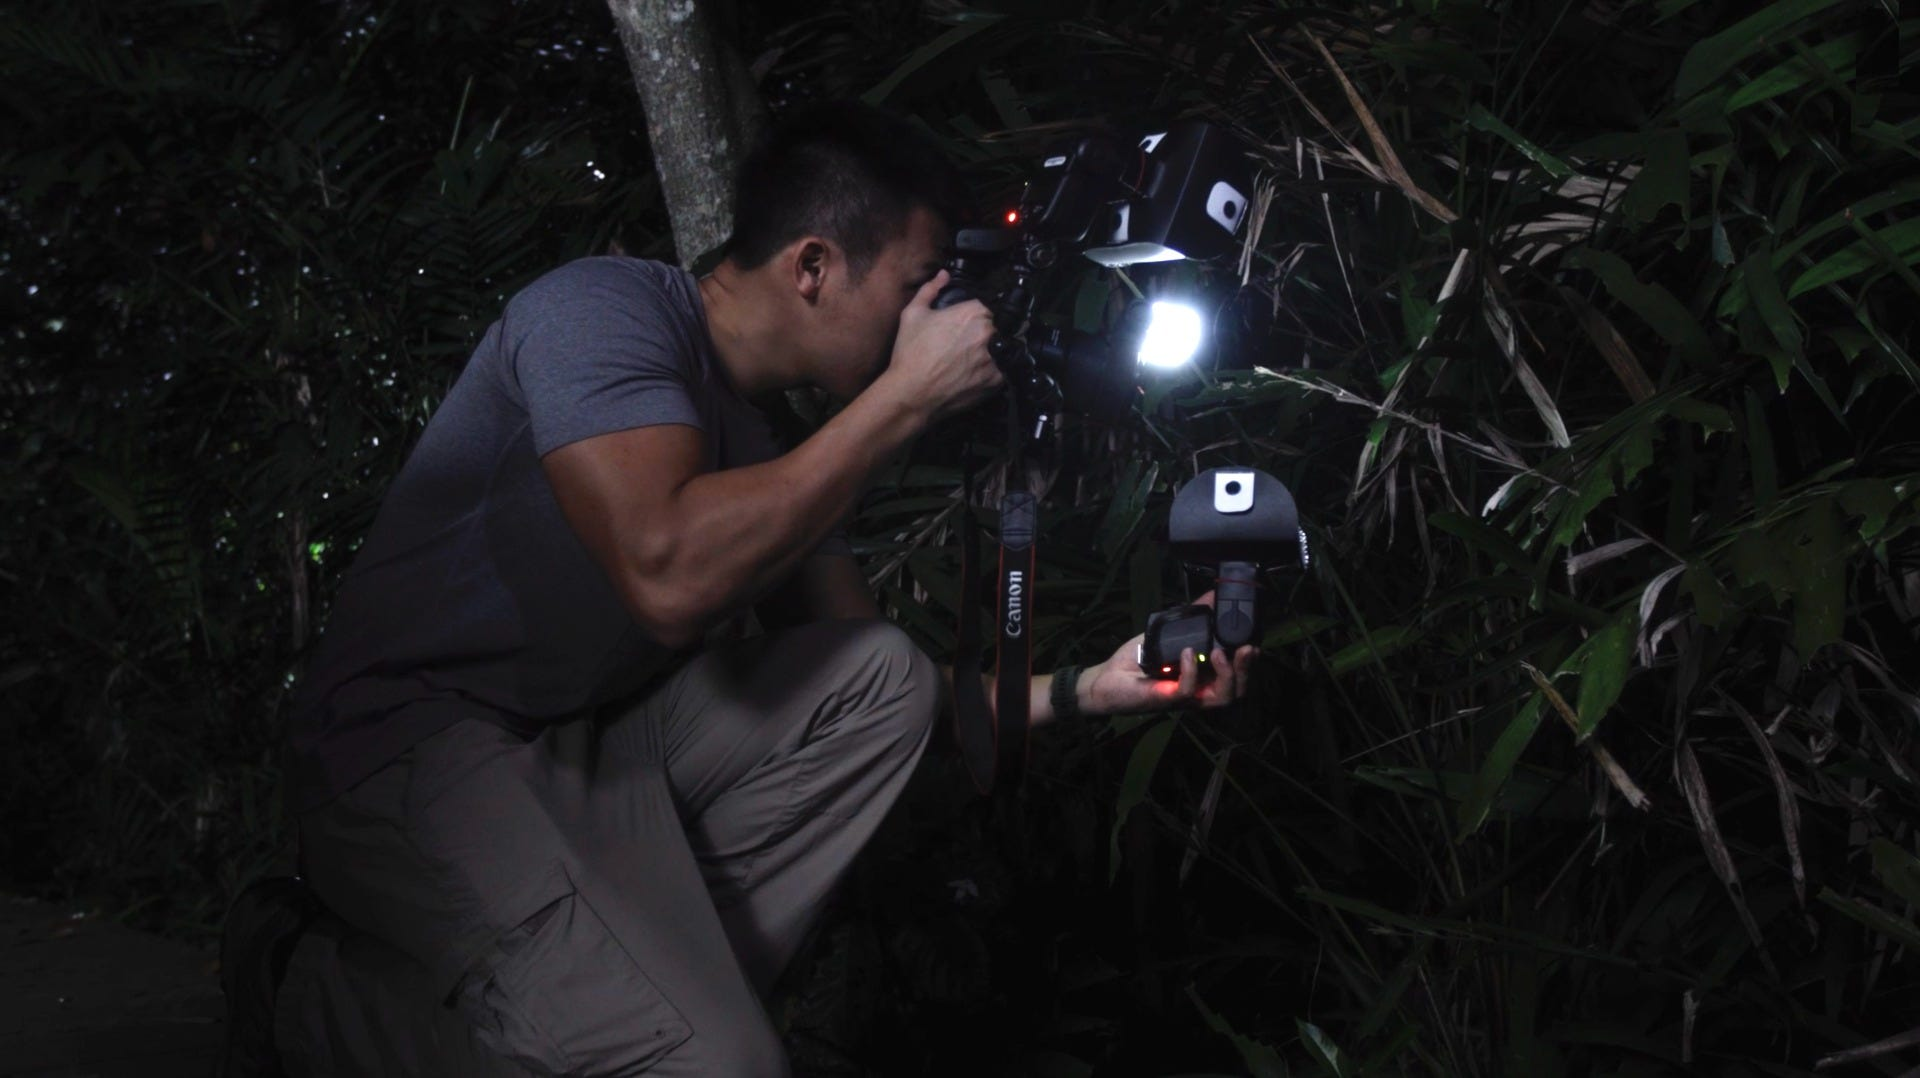 Nighttime photography with Lenz Lim